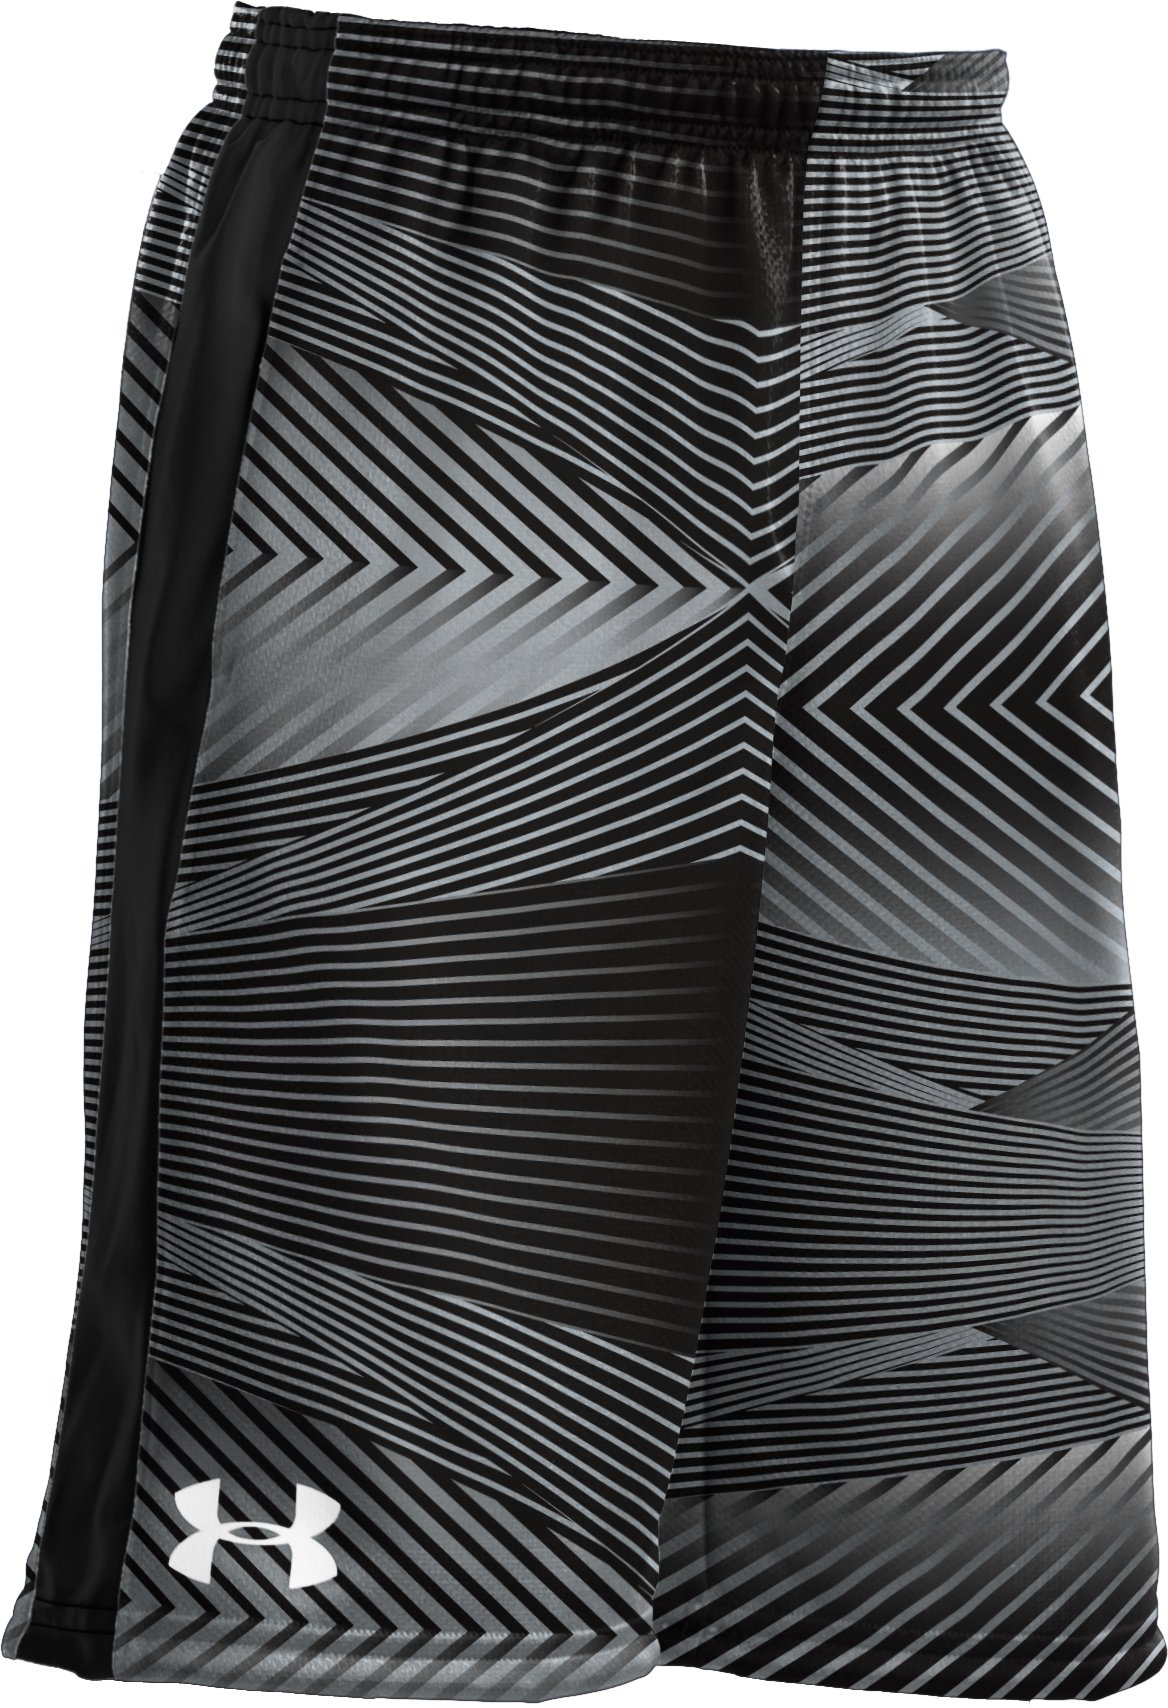 "Boys' UA Ultimate Printed 9"" Shorts, Black"